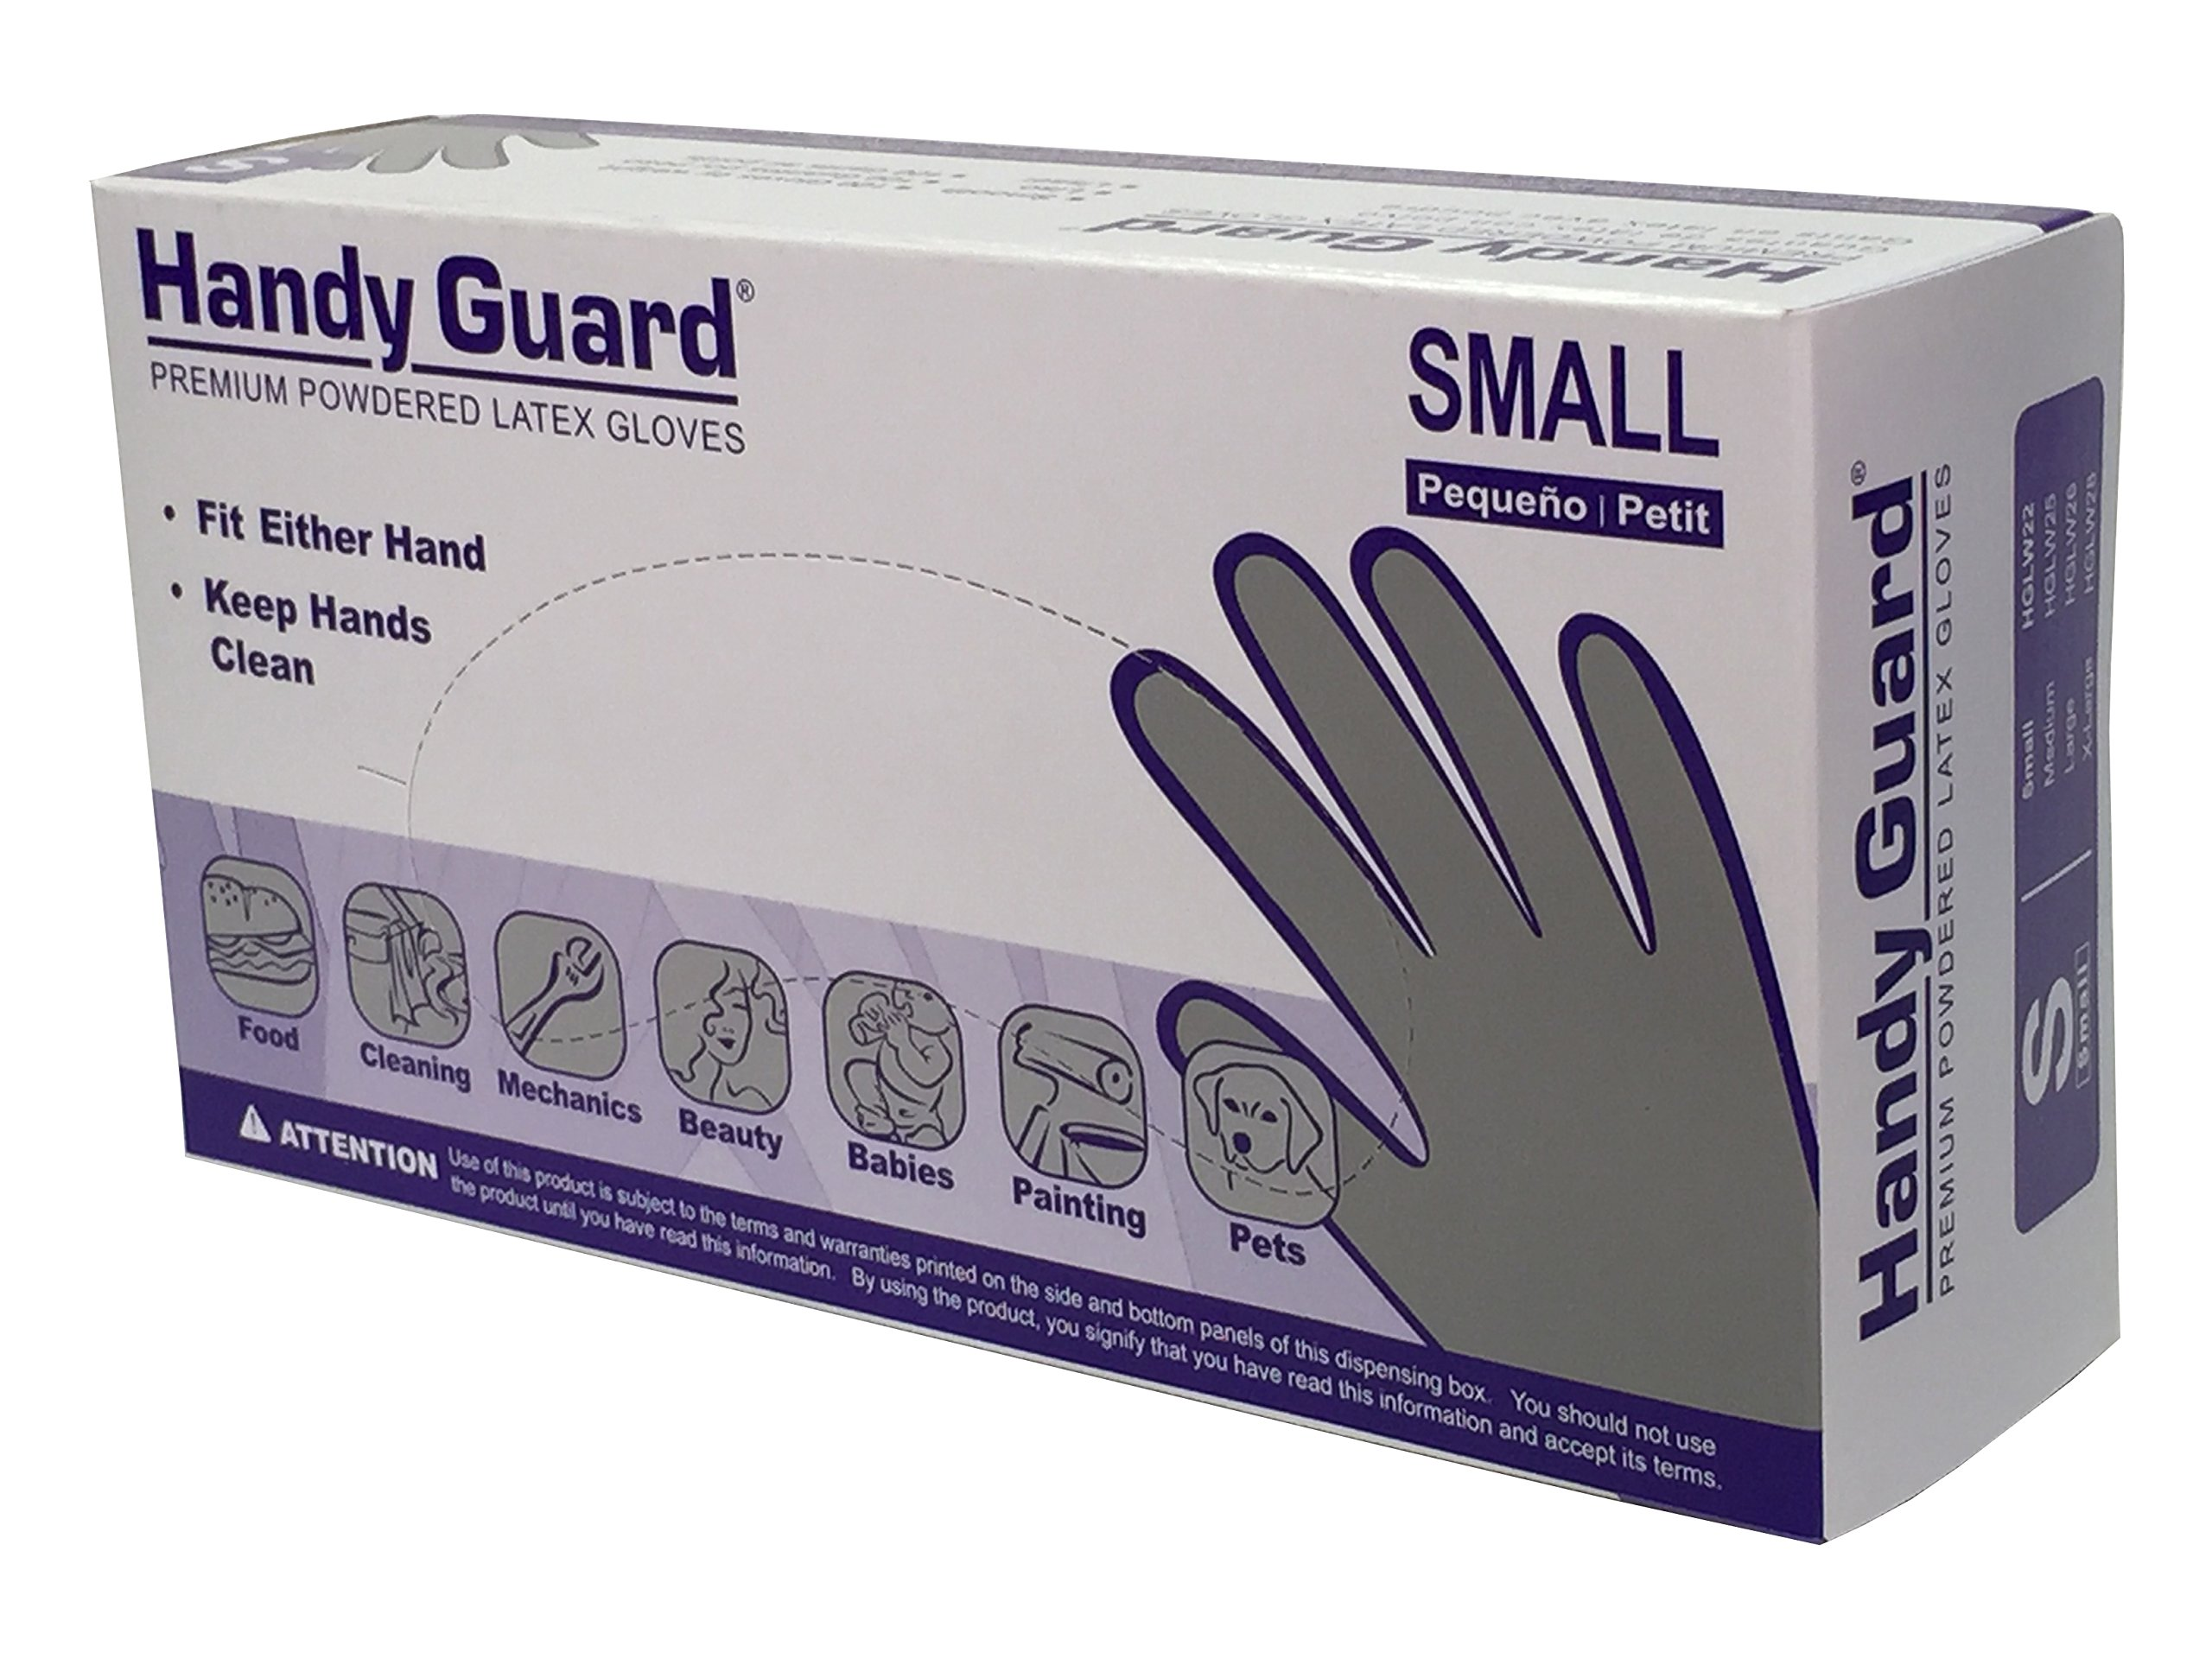 Adenna Handy Guard 4 mil Latex Powdered Gloves (White, Small)